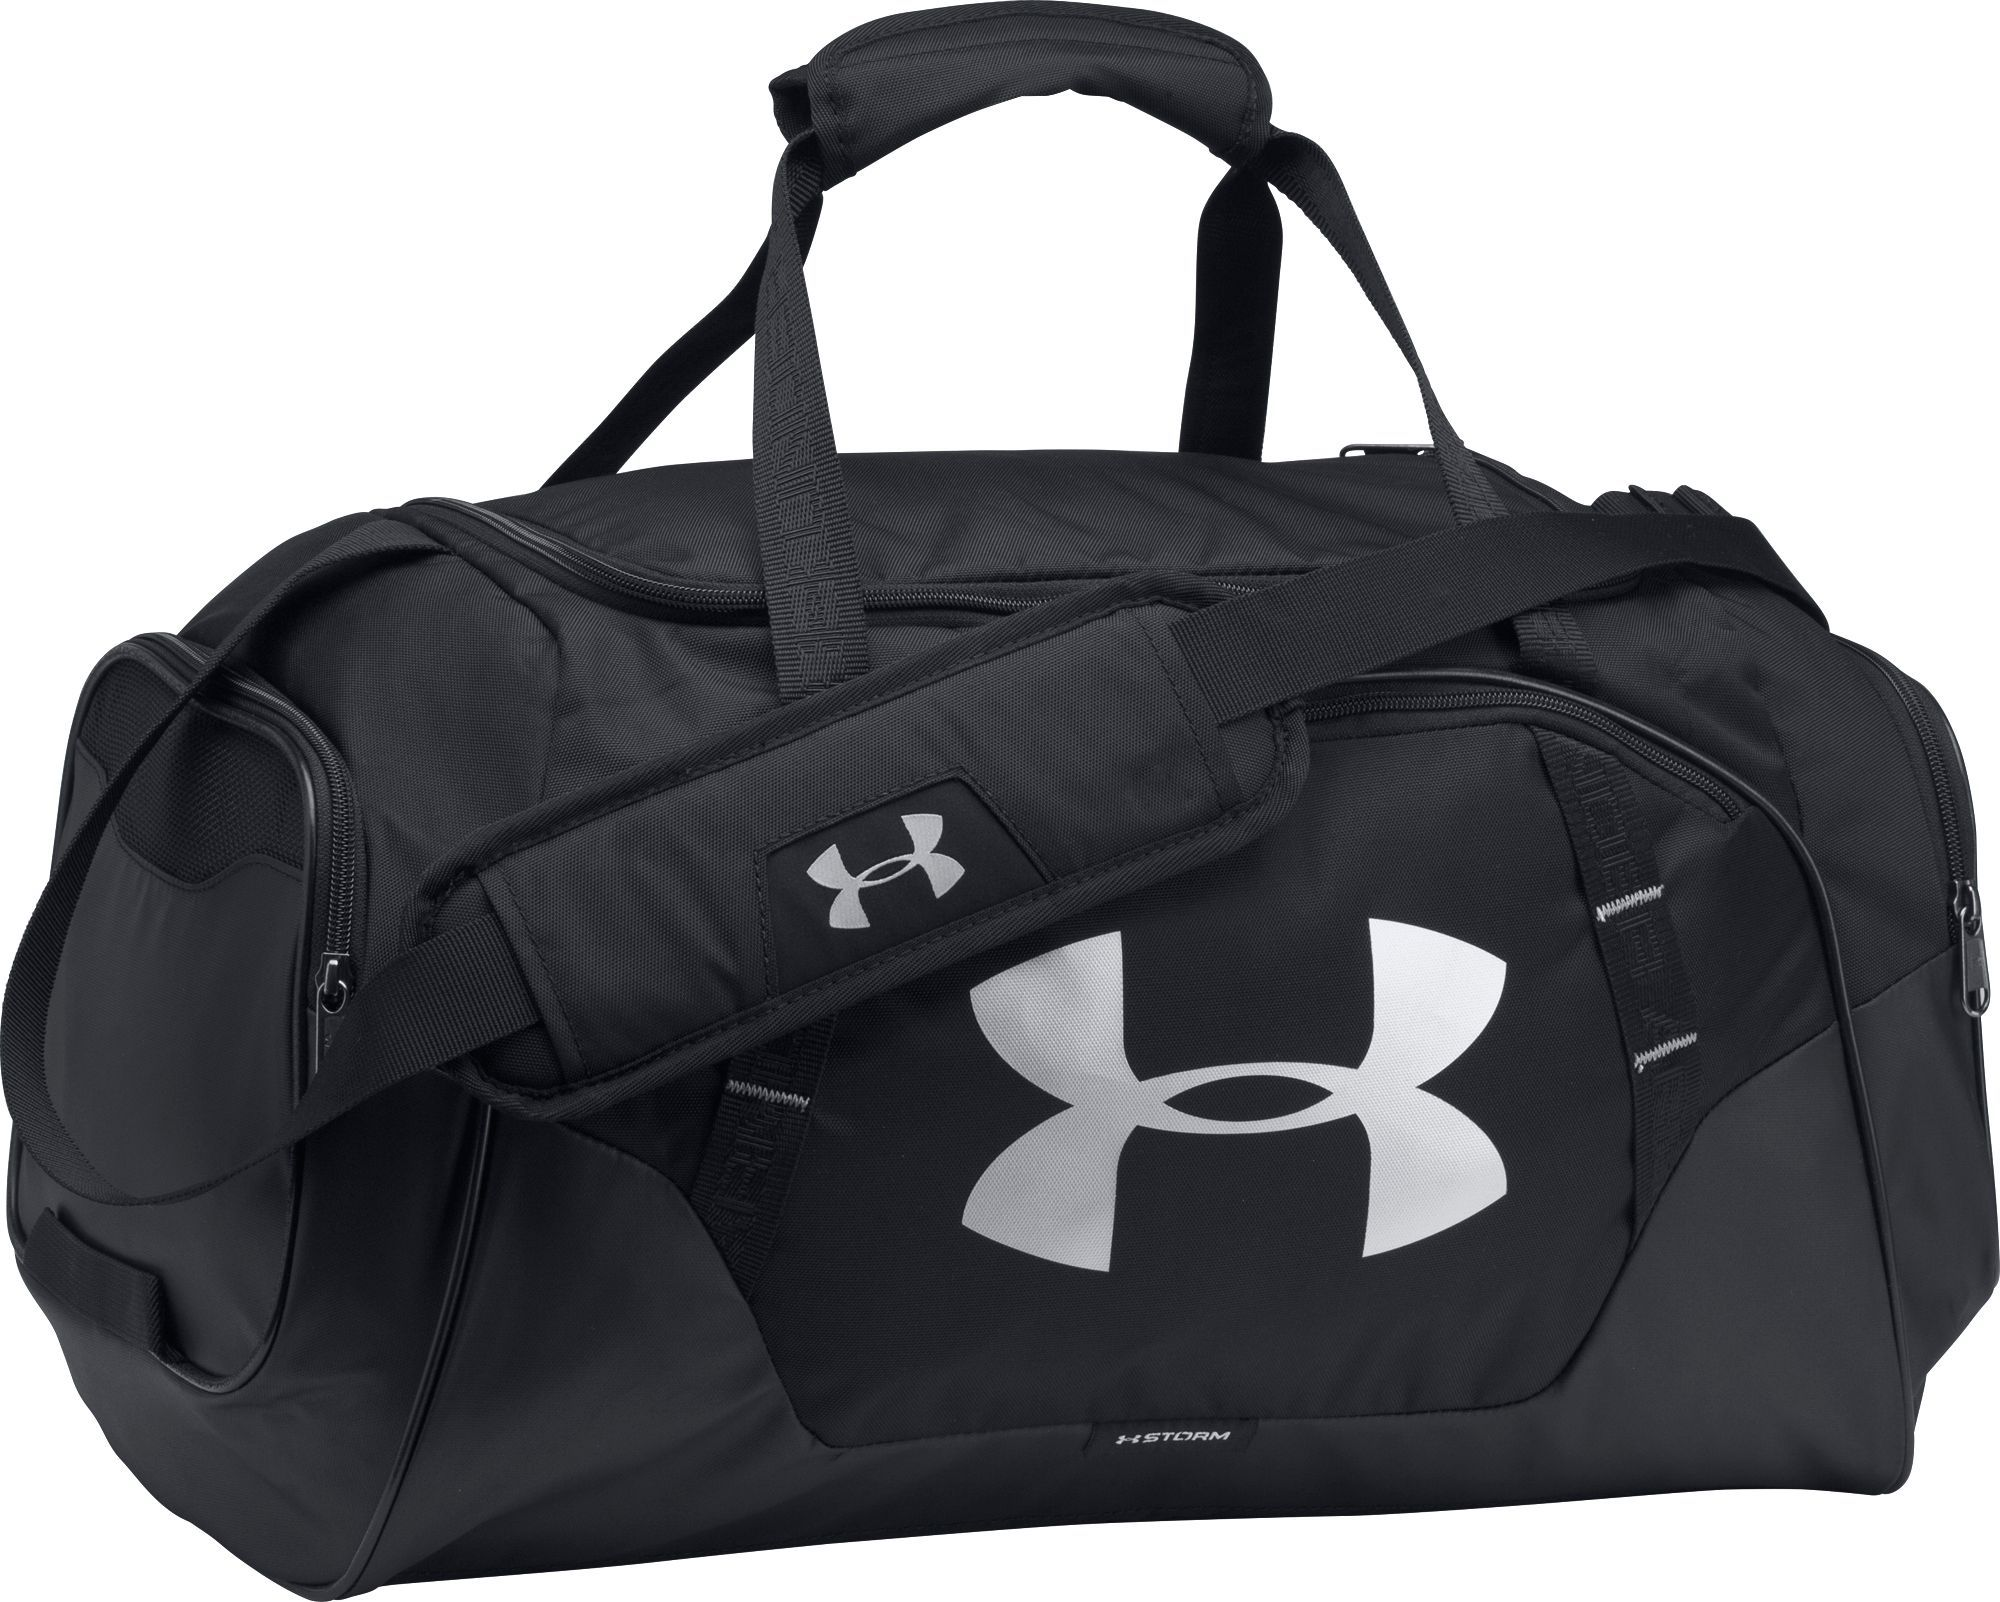 fcb697f9b55 Under Armour Undeniable 3.0 Small Duffle Bag   Products   Duffel bag ...